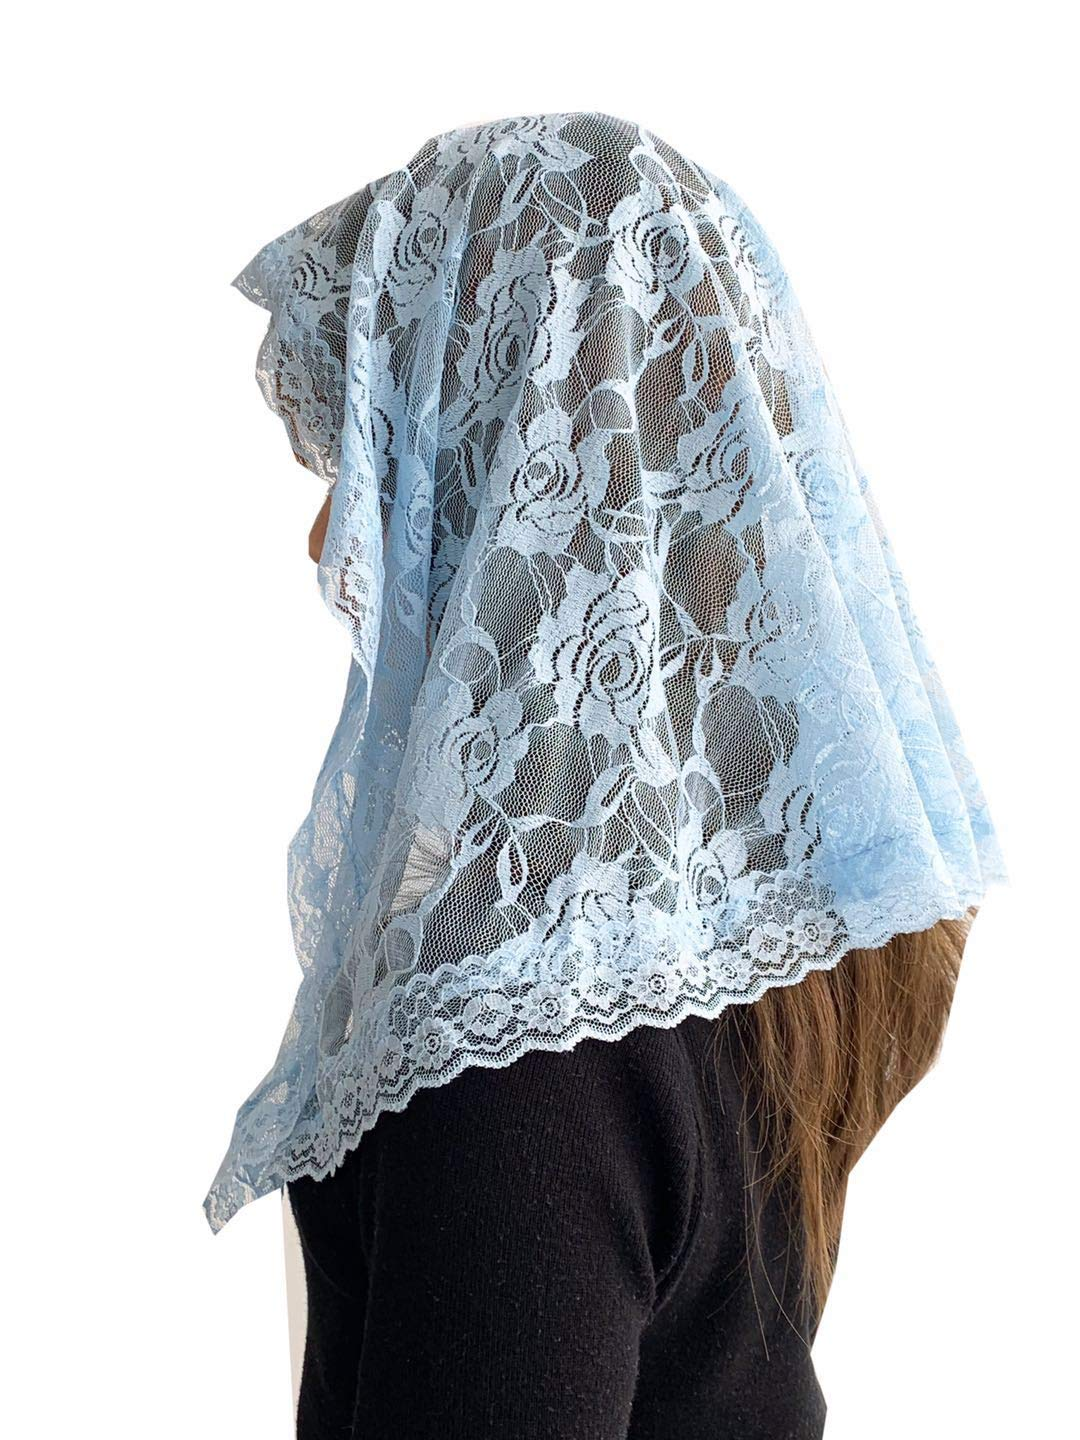 Veil Lace Mantilla Catholic Church Chapel Veil Head Covering Latin Mass (Blue) by Czy accessories (Image #3)